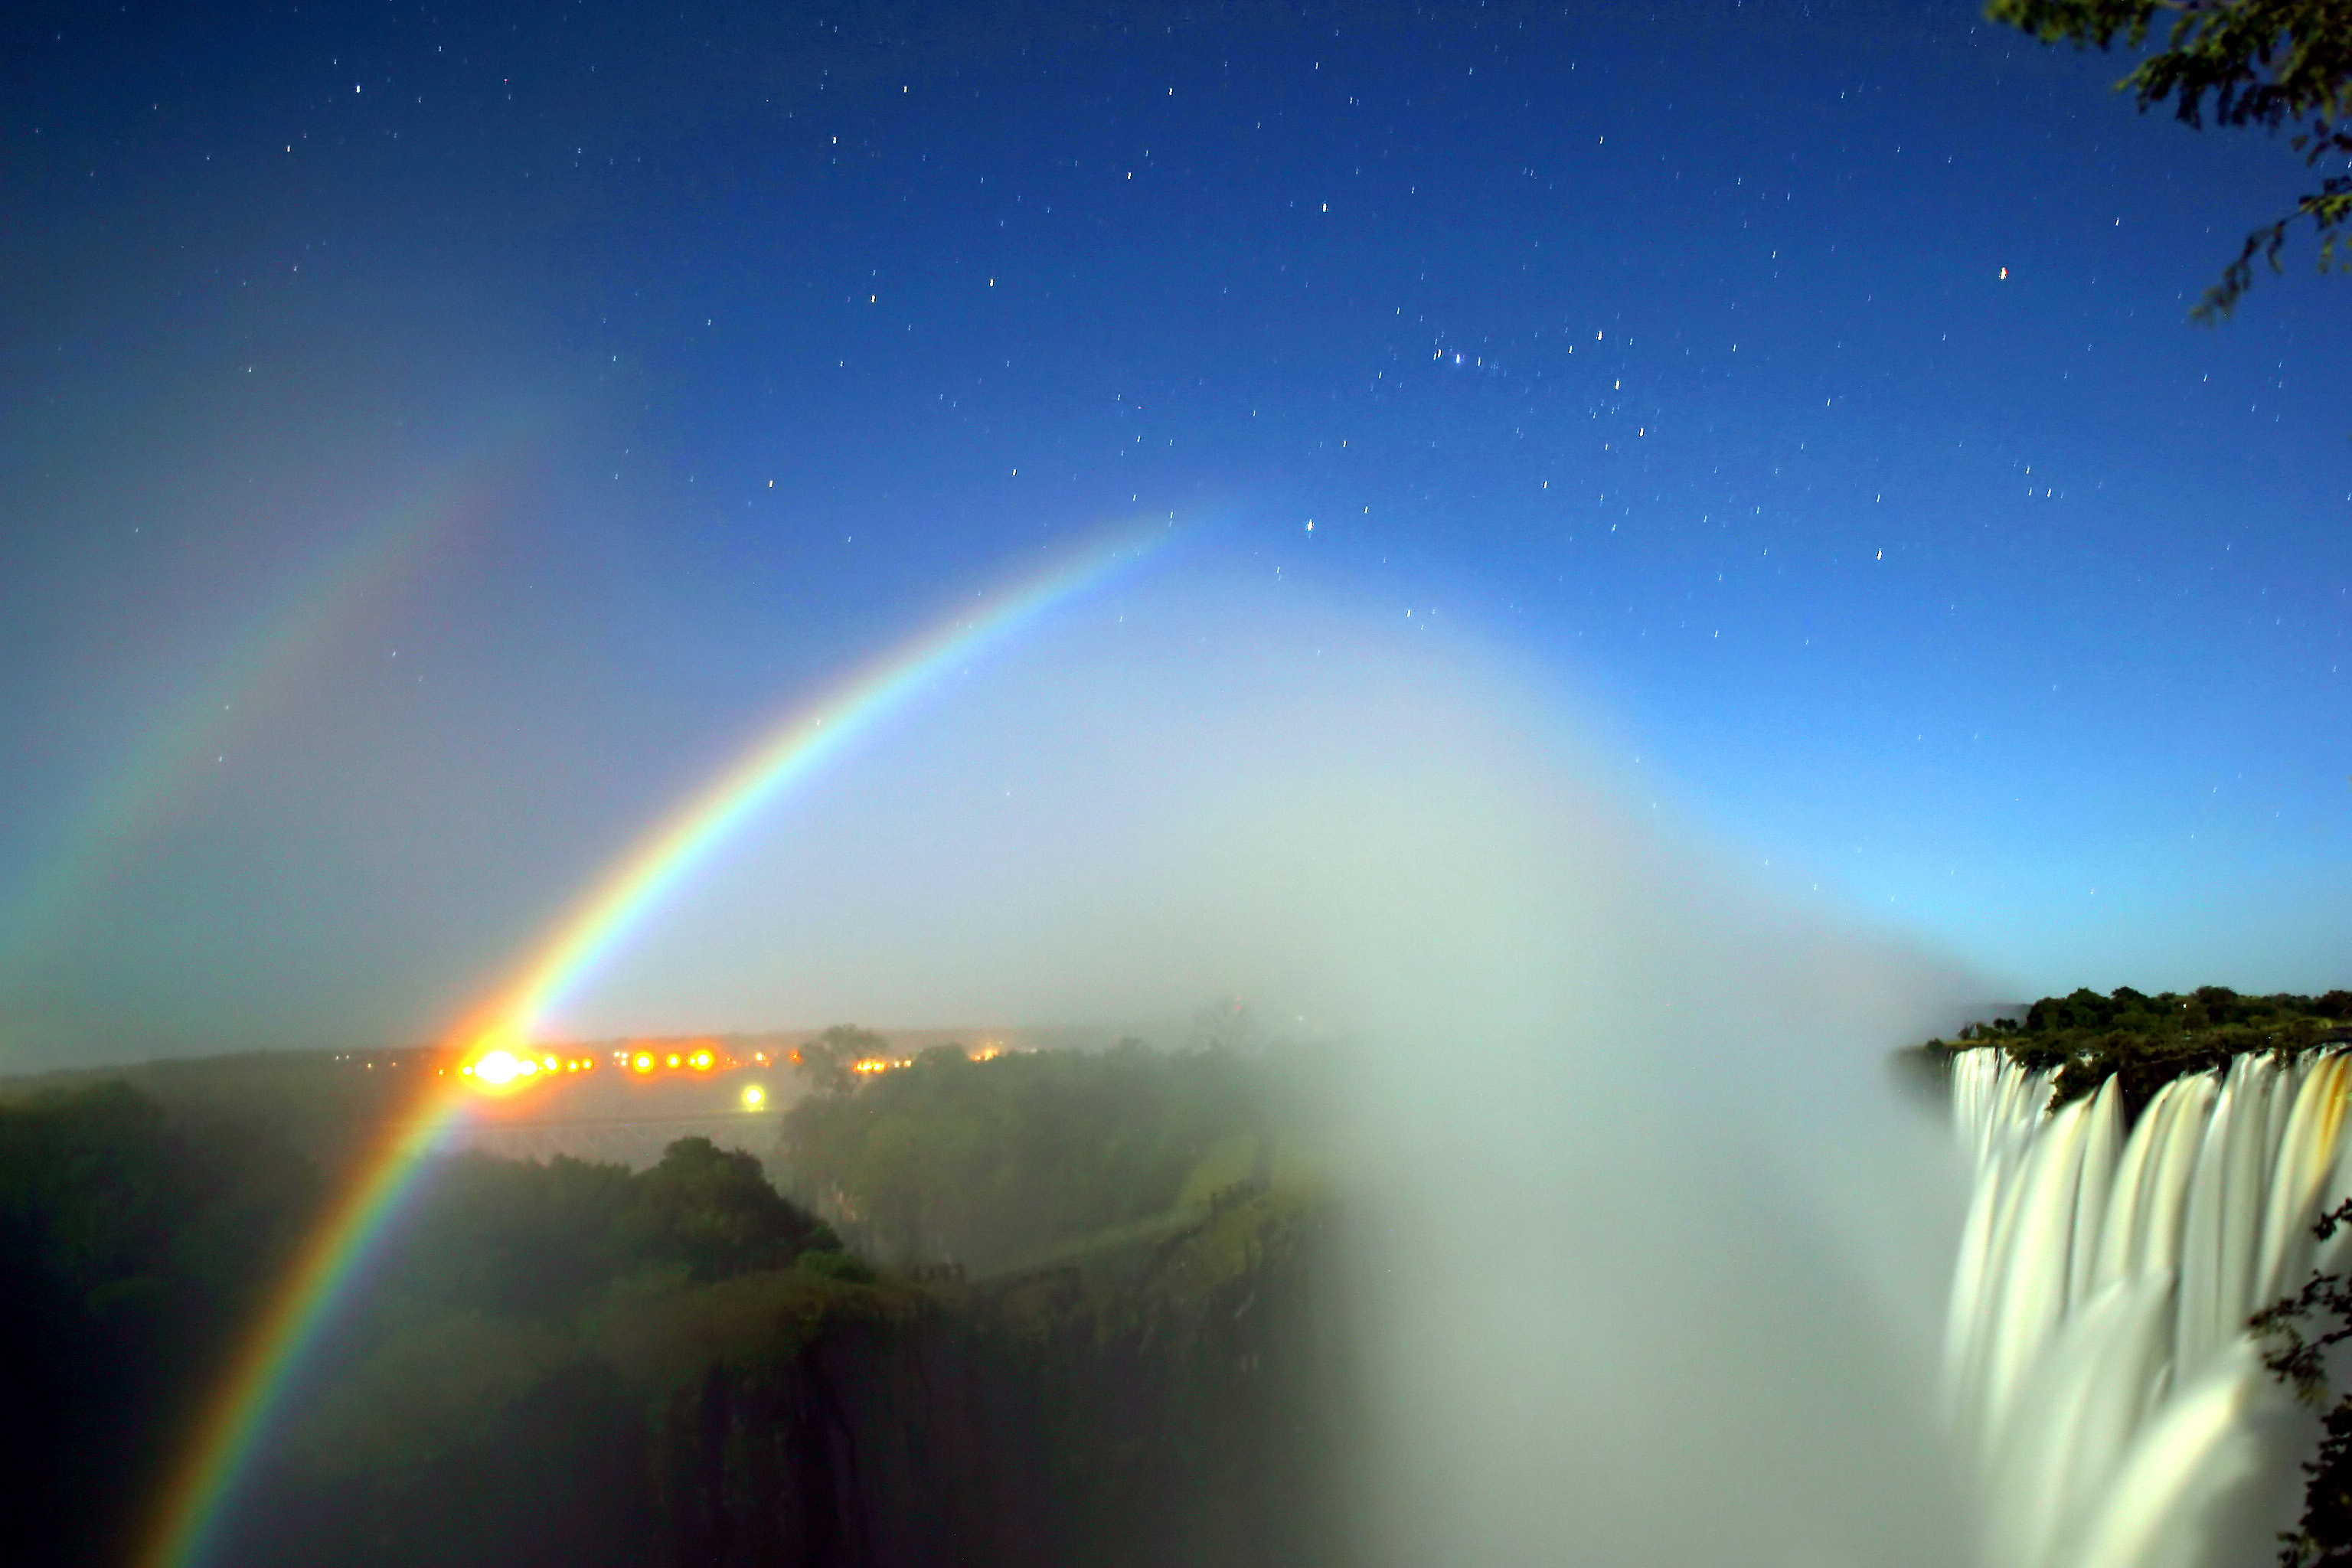 Word story - moonbow